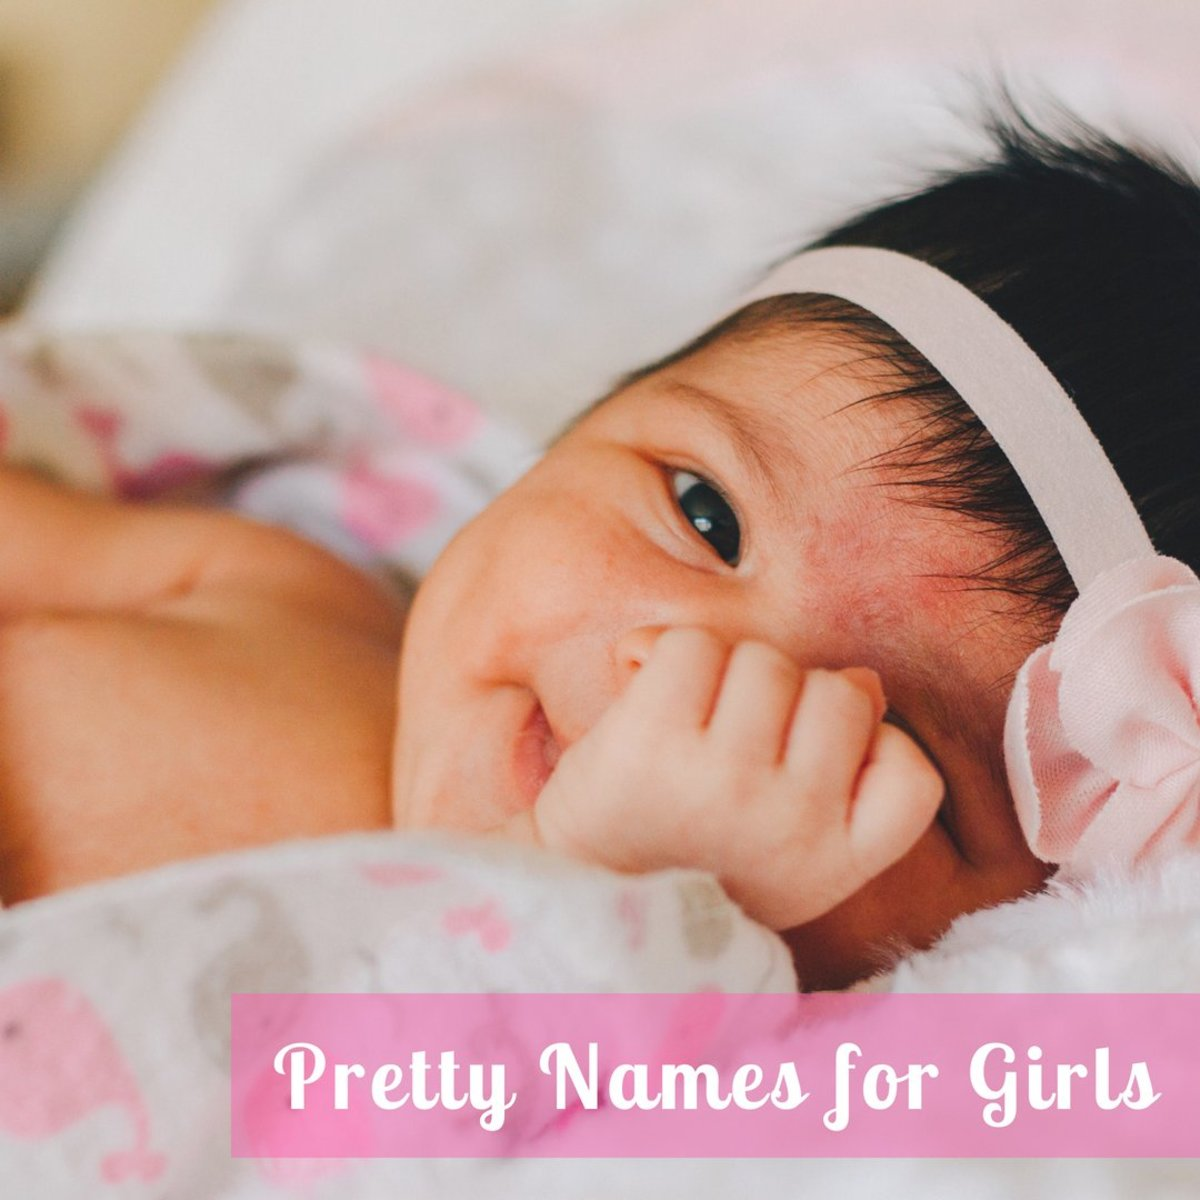 Feminine, girly baby names